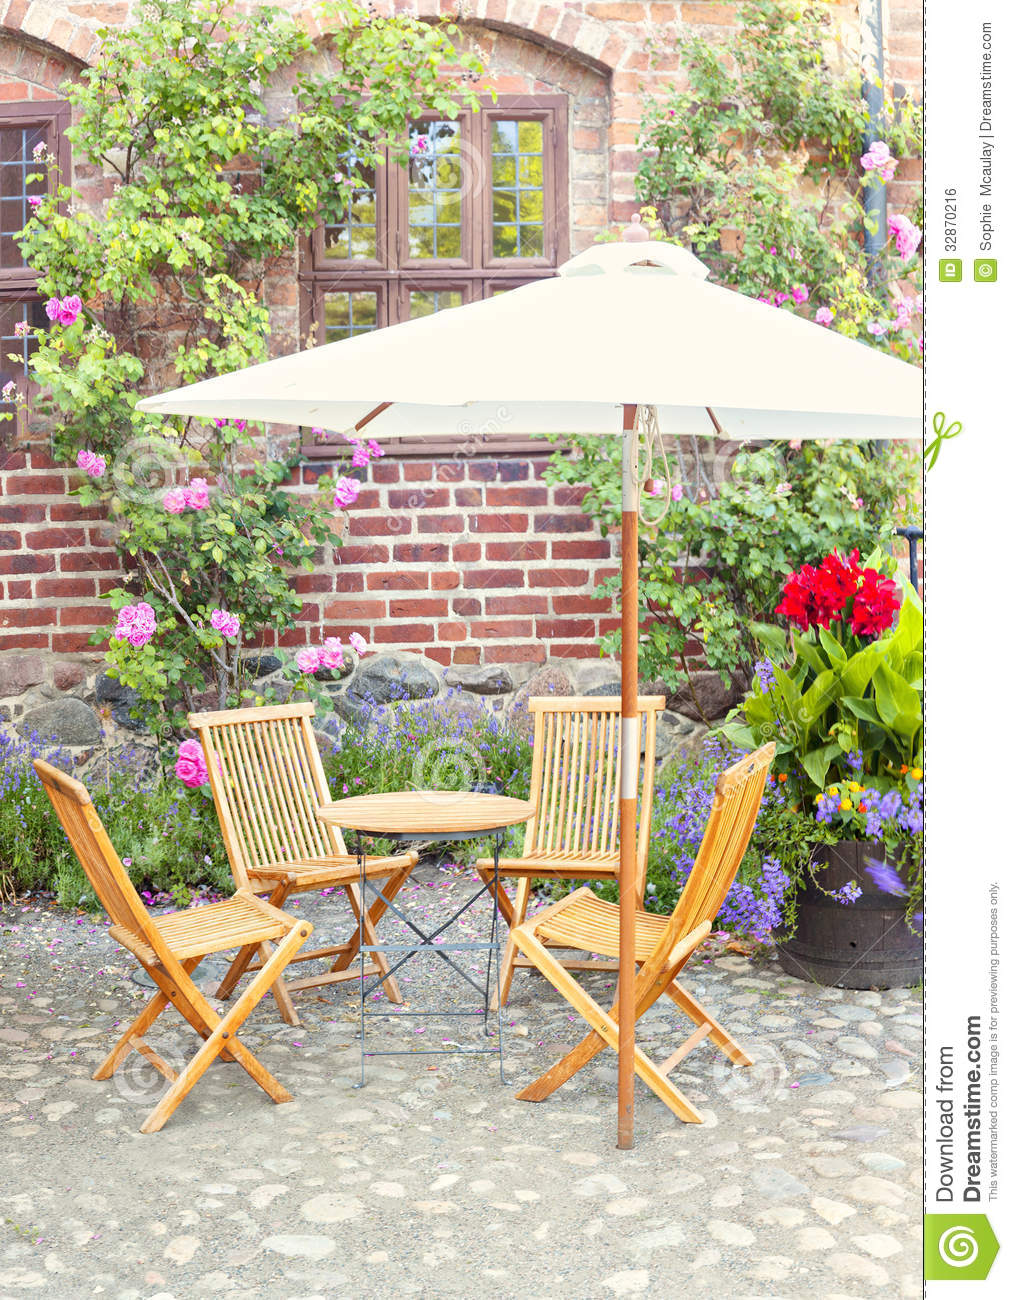 Garden seating area royalty free stock image image 32870216 for Outside garden seating area